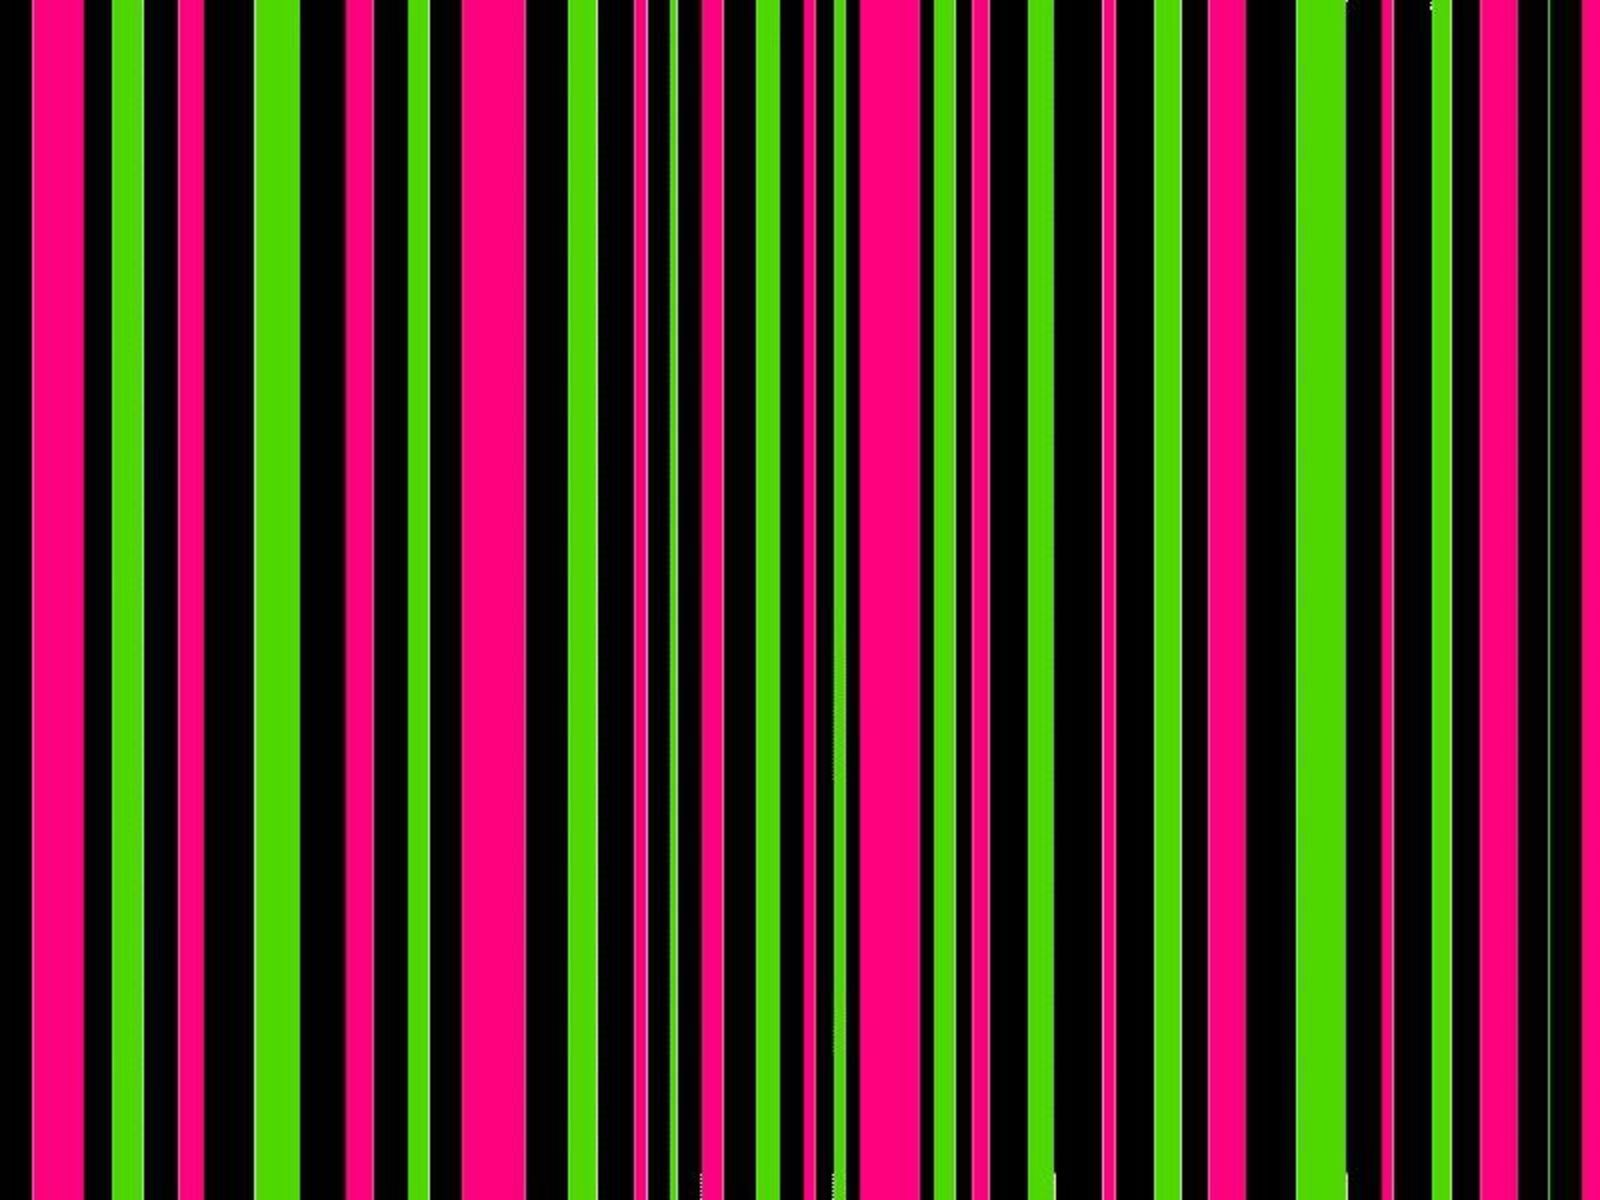 Stripes - Neon Colors Rock Wallpaper (18994370) - Fanpop fanclubs